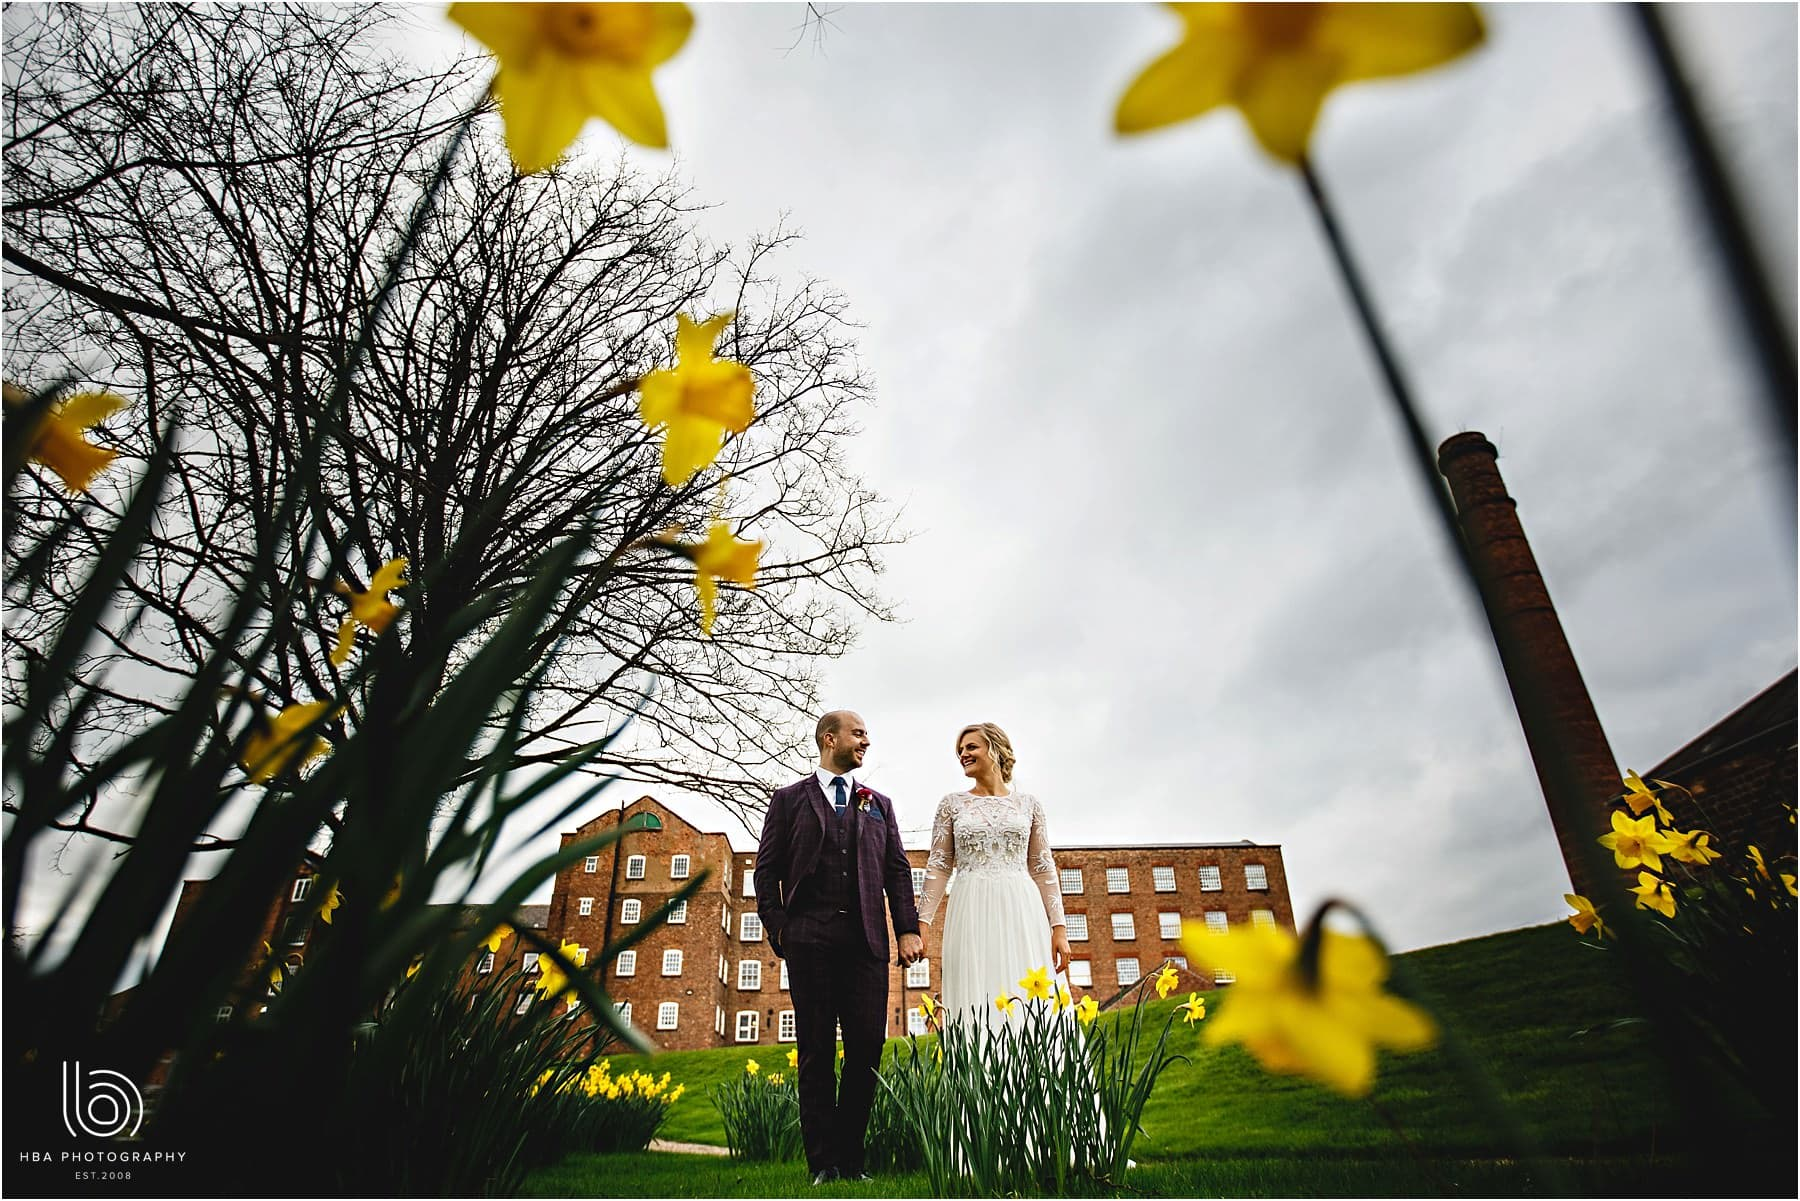 the bride & groom in the daffodils